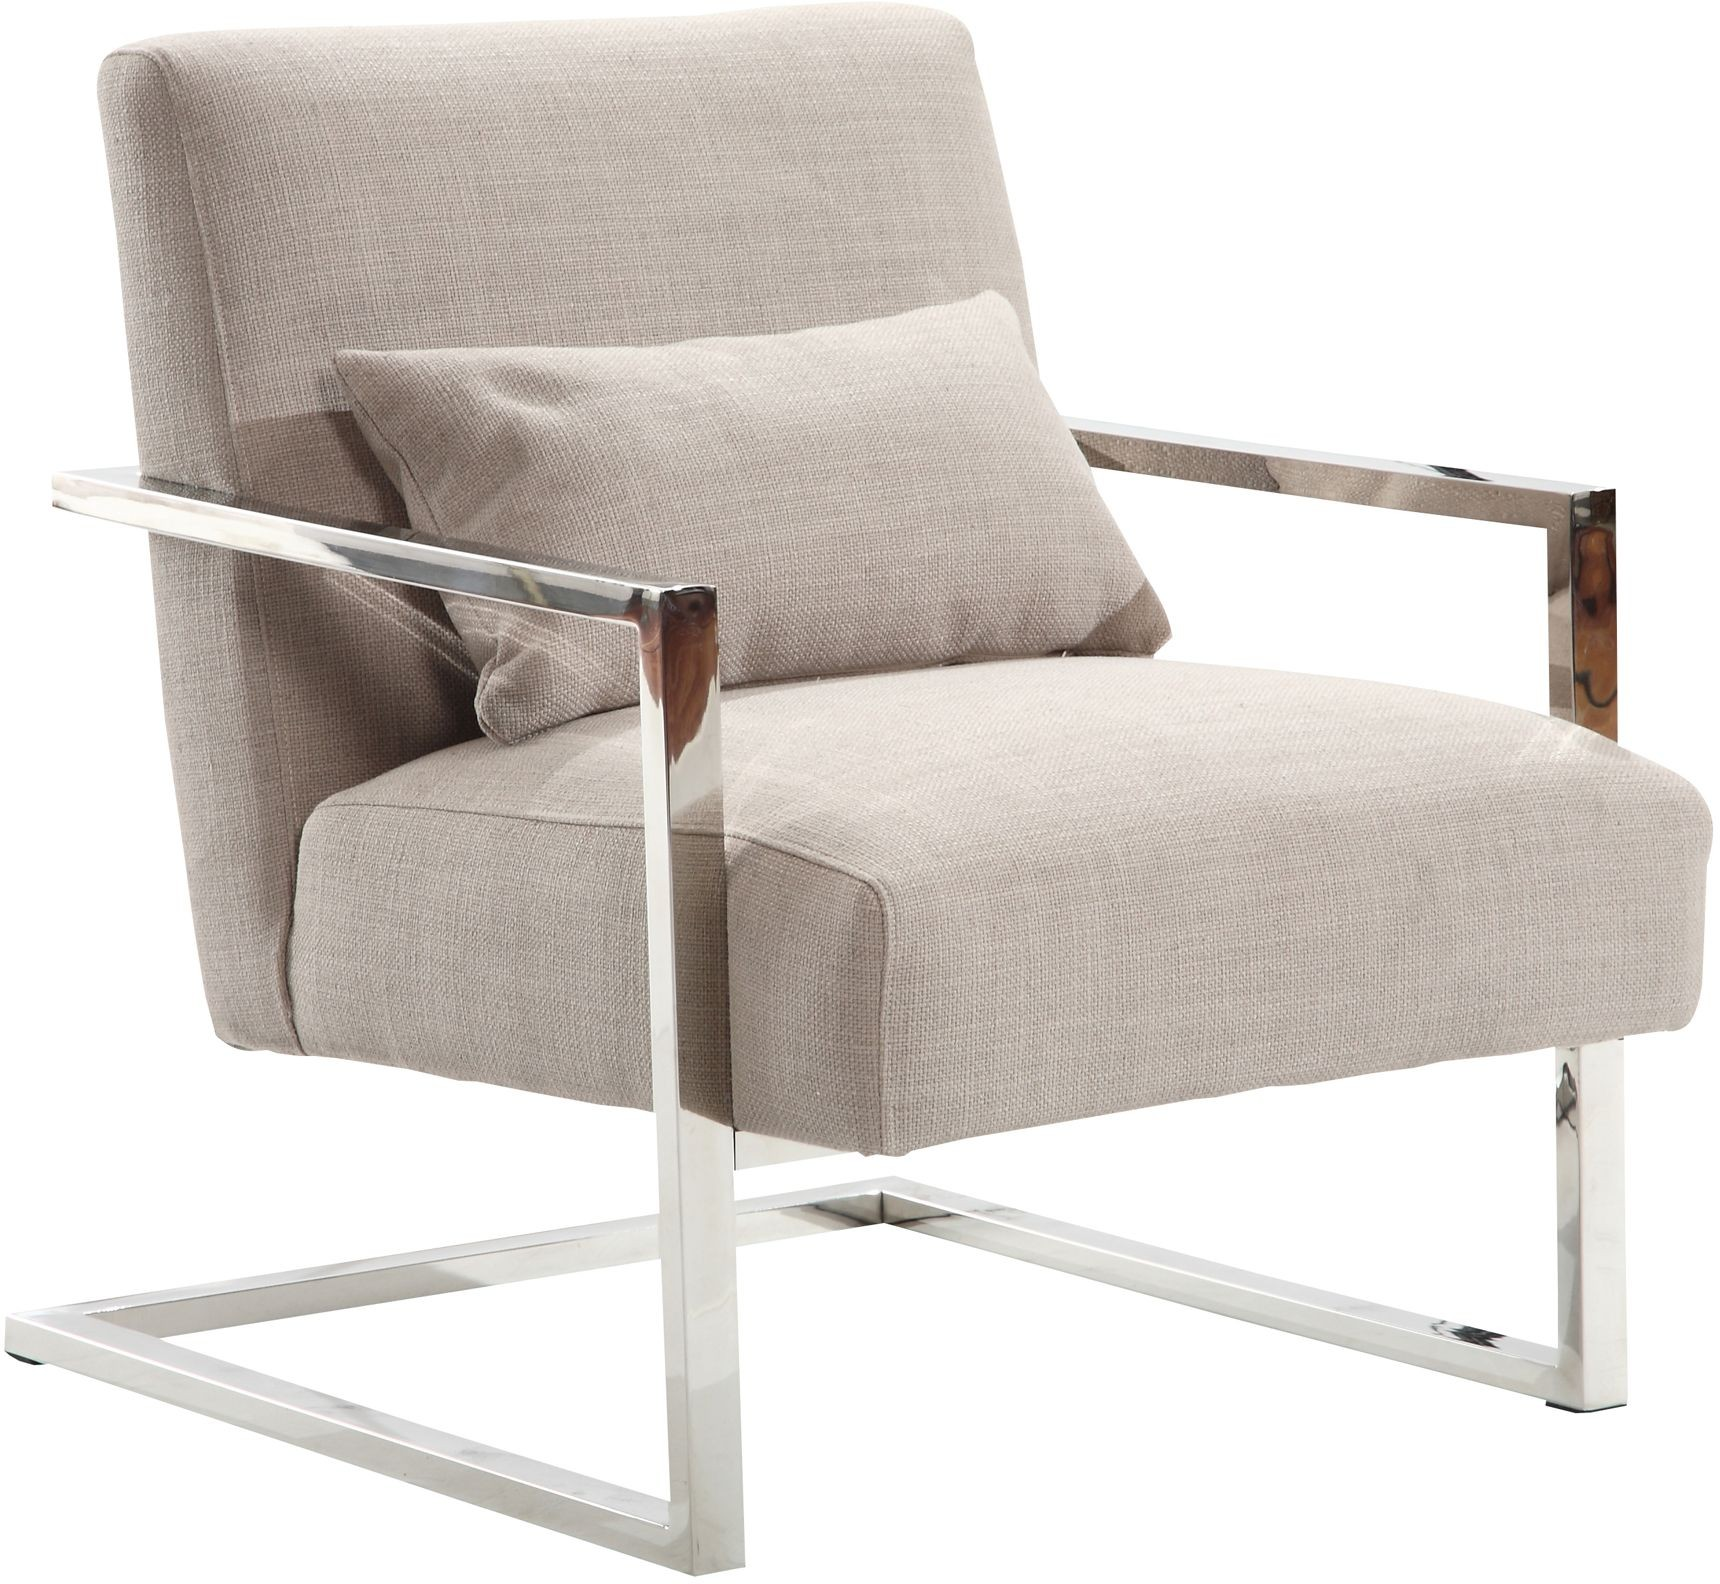 Modern Accent Chairs Skyline Modern Gray Linen And Steel Accent Chair From